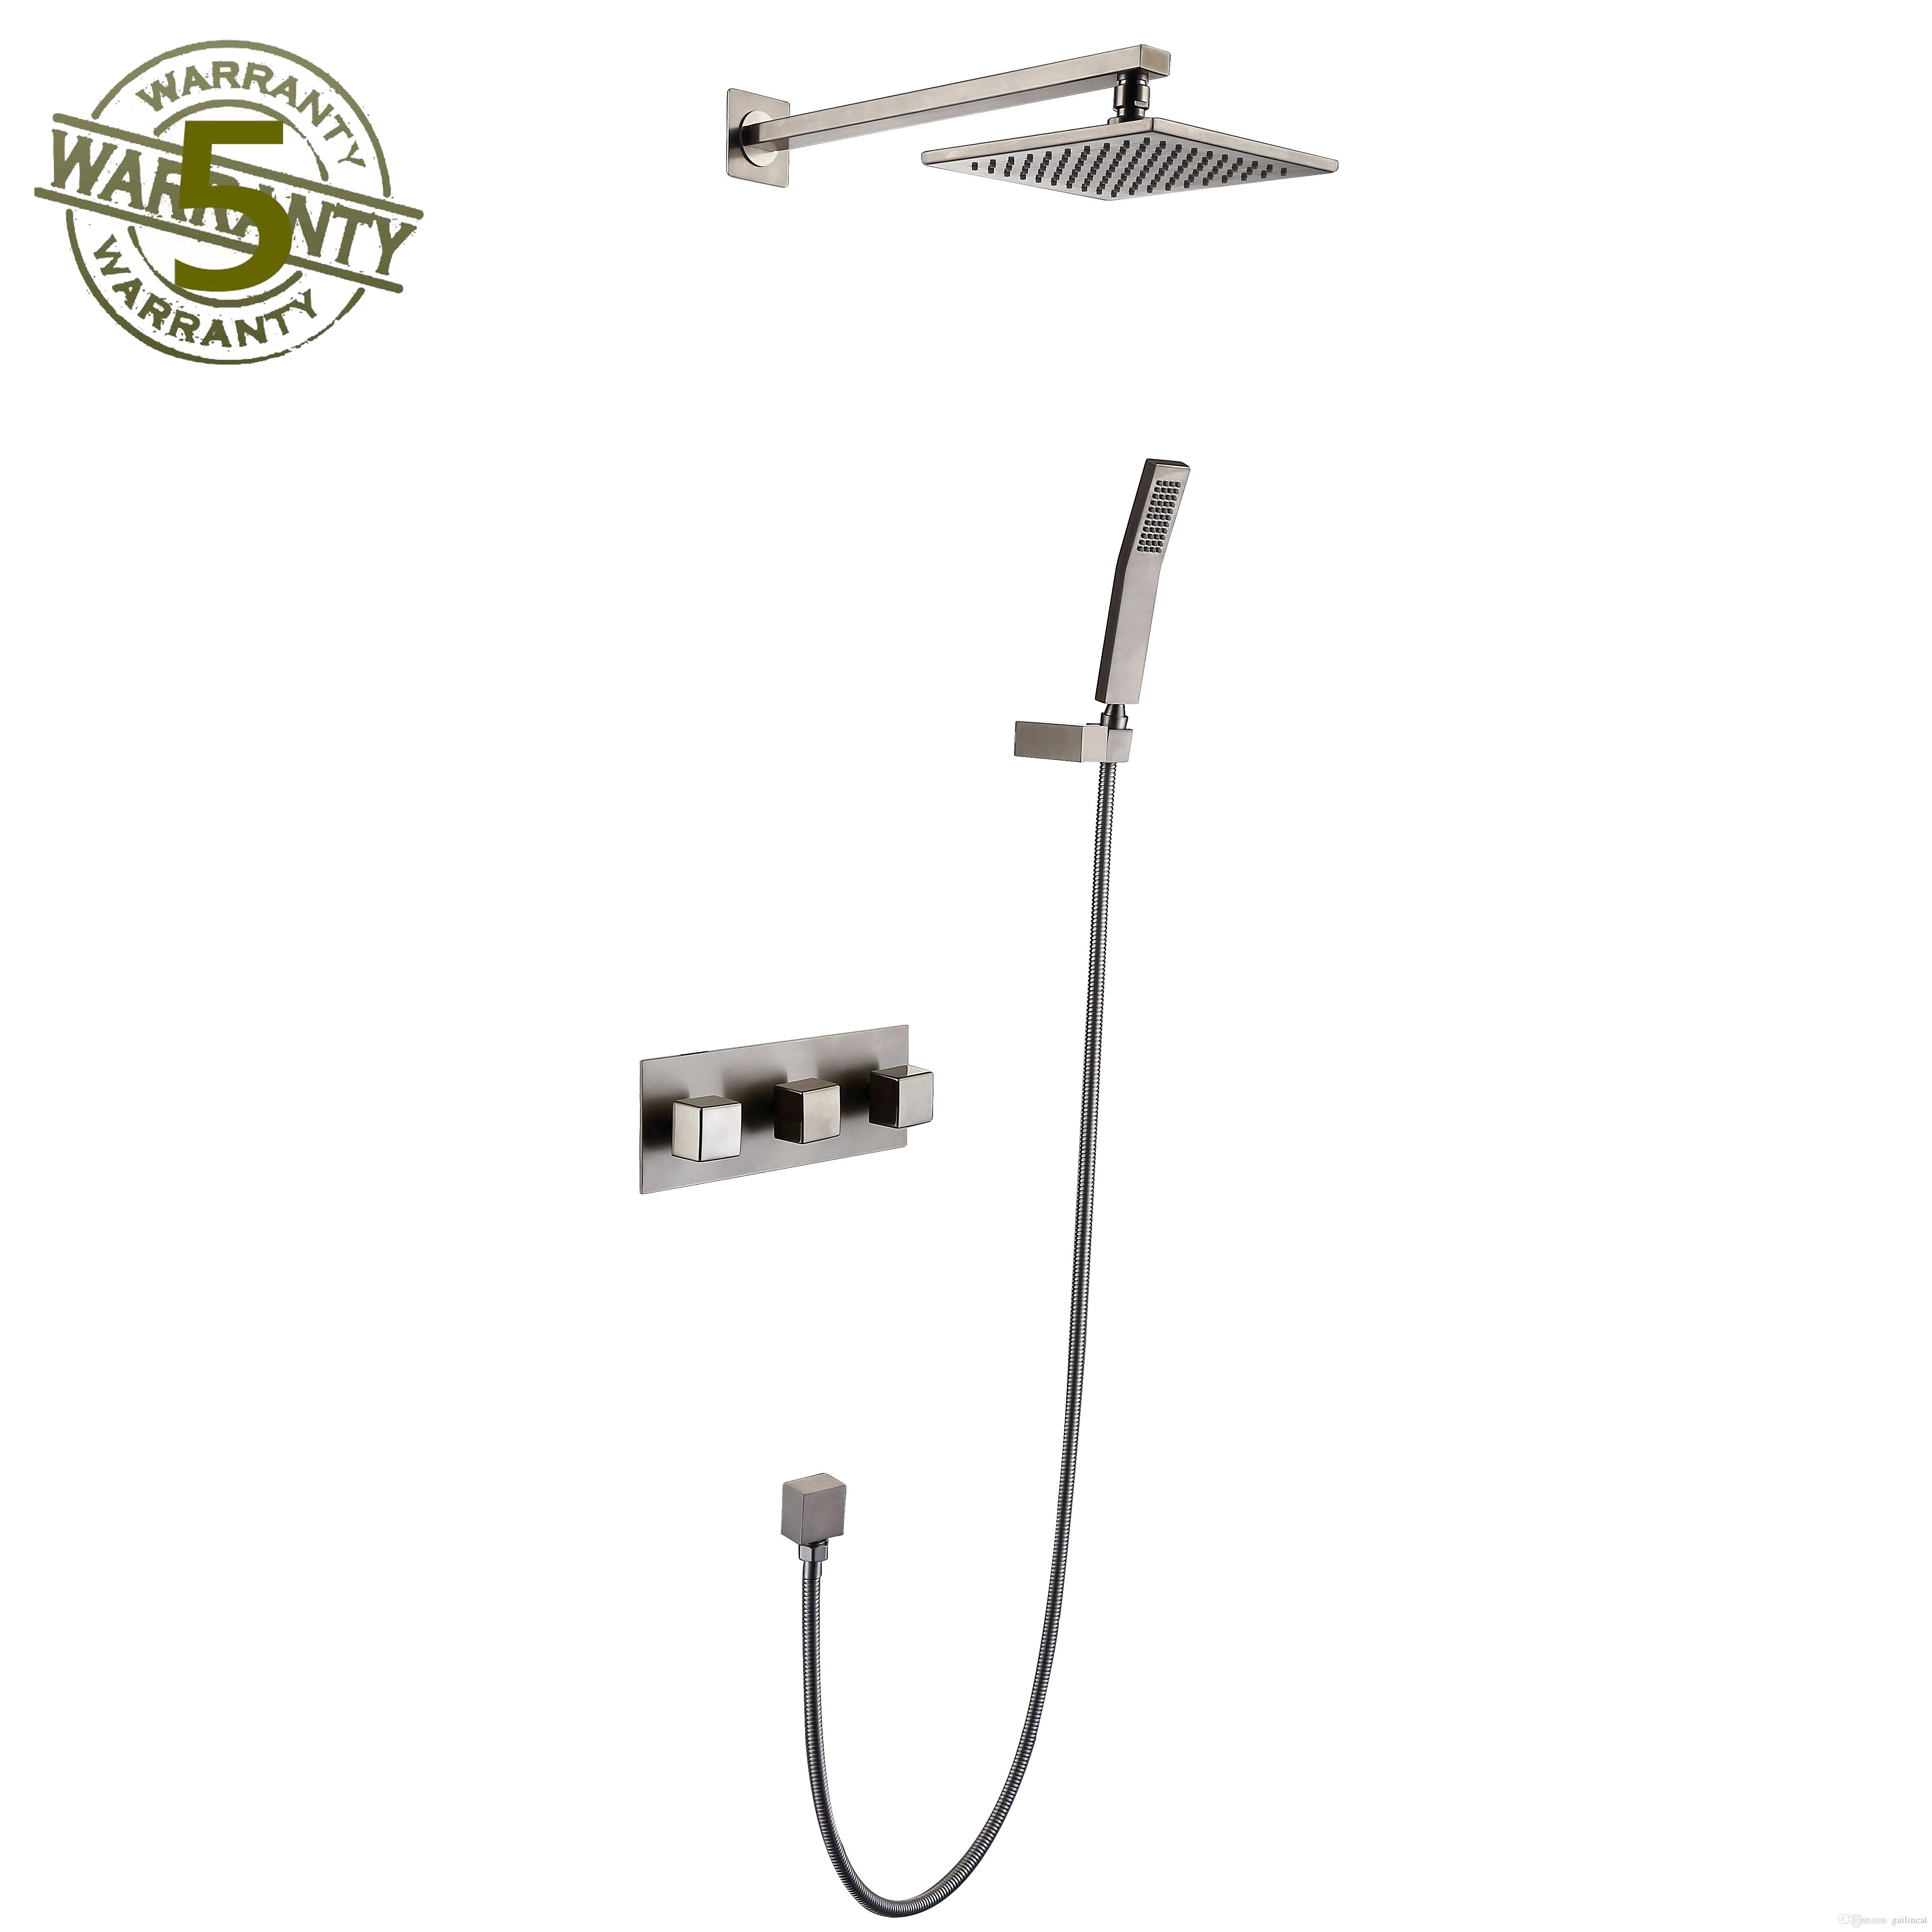 2019 Shower Faucet System Nickel Brushed Finish Mixer 8 Showerhead Rainfall With High Pressure Combo Set Wall Mounted Three Handles From Guilincat